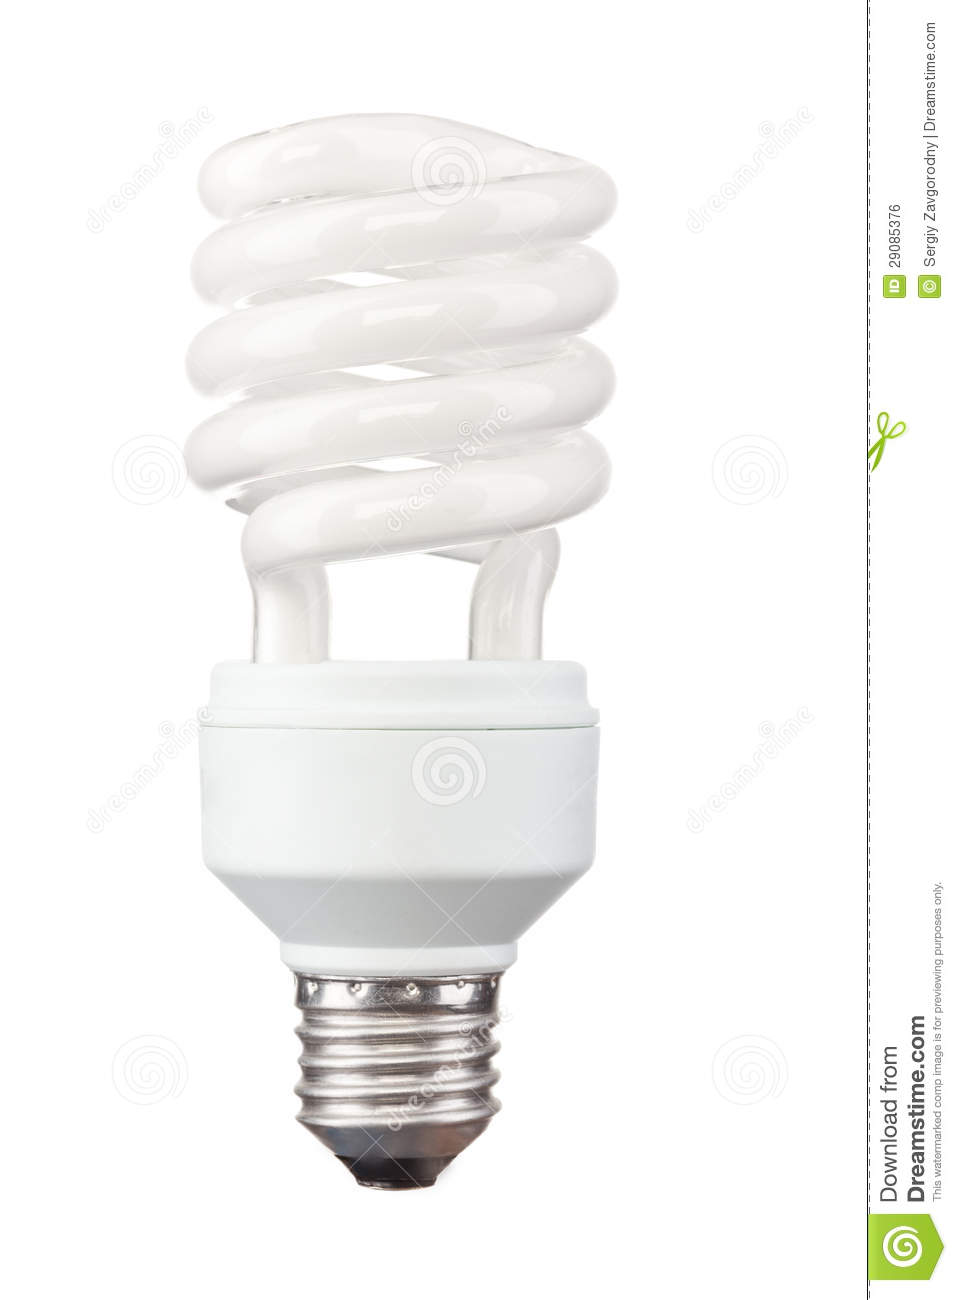 energy saving light bulb royalty free stock image image 29085376. Black Bedroom Furniture Sets. Home Design Ideas